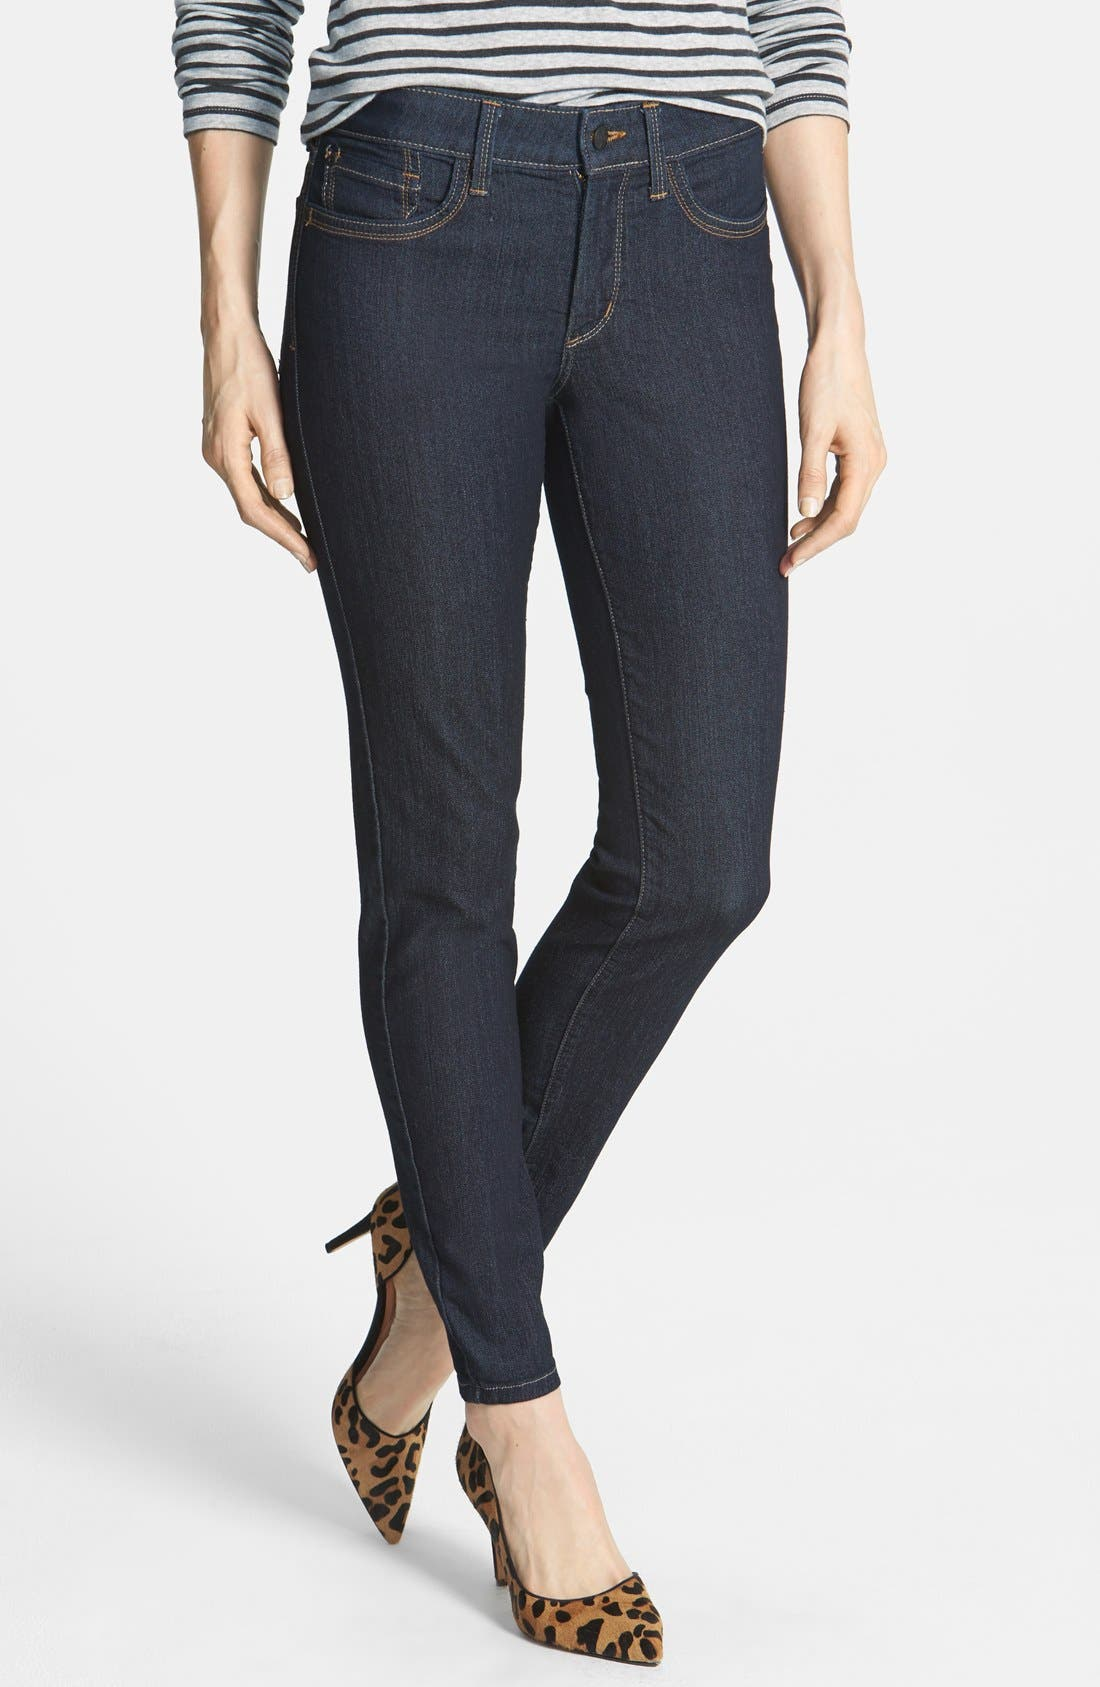 Alternate Image 1 Selected - NYDJ 'Ami' Stretch Skinny Jeans (Dark Enzyme) (Petite)